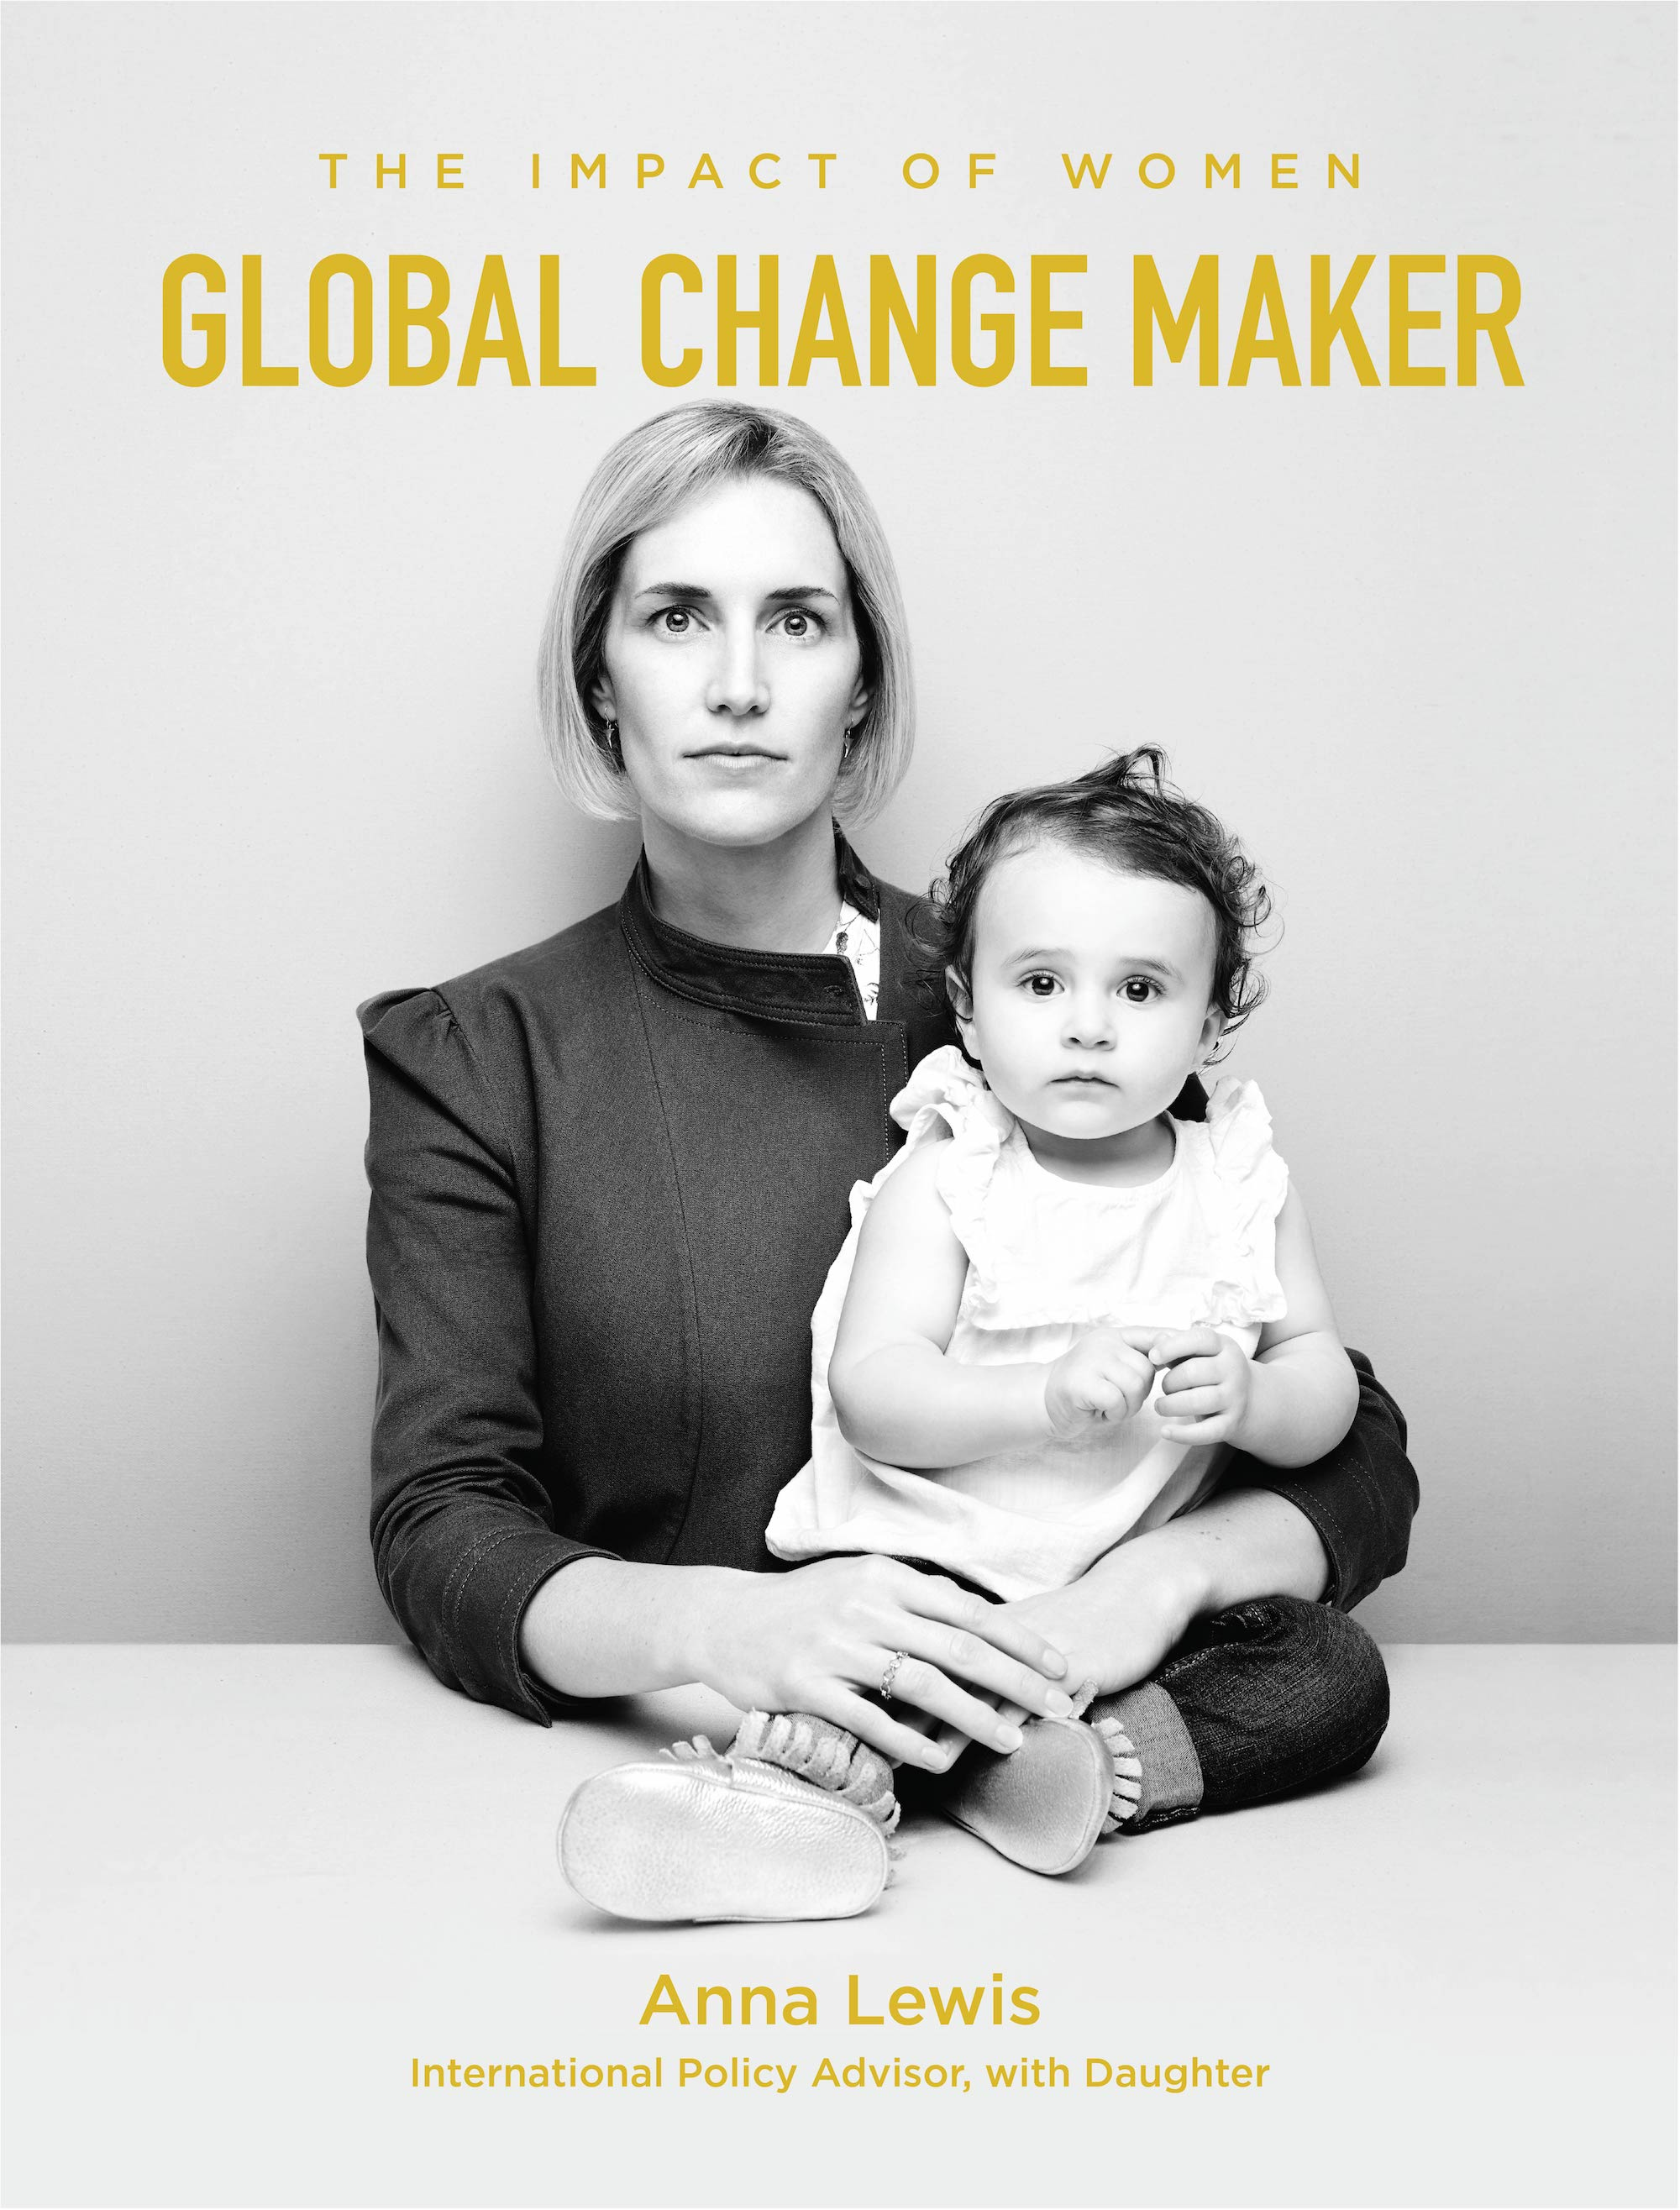 Anna Lewis is a Global Change Maker